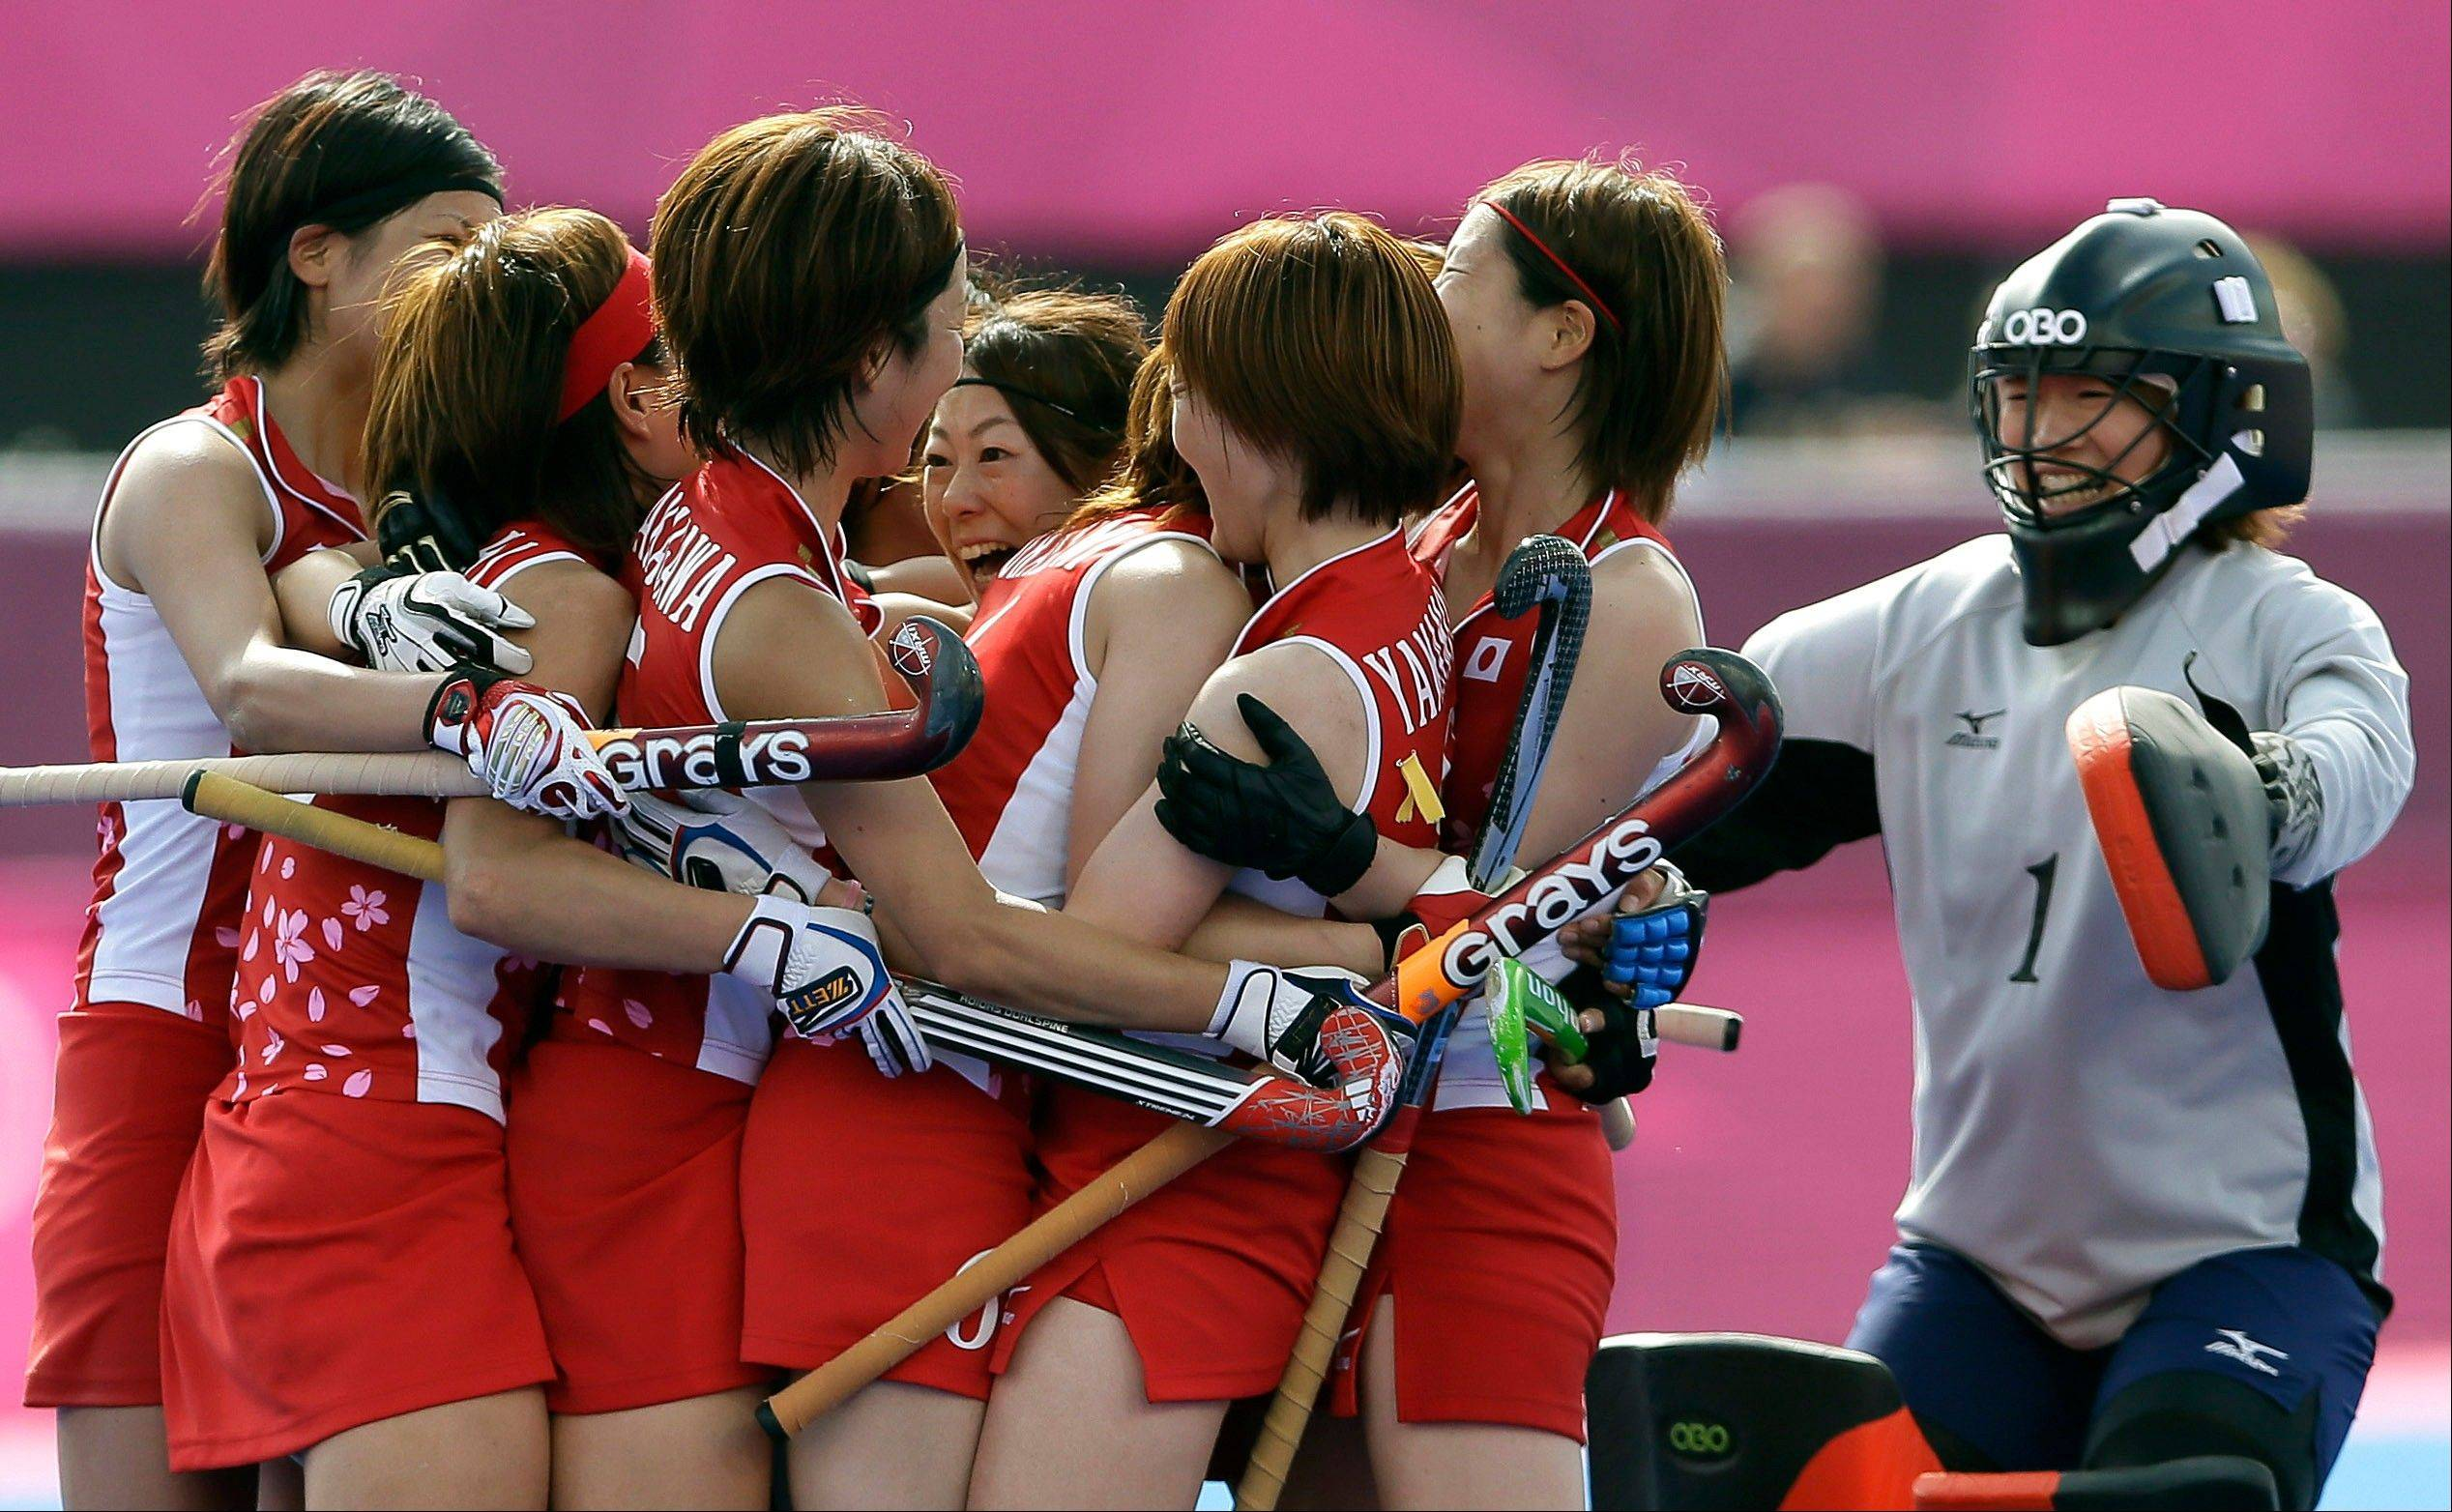 Japan's players celebrate winning their classification hockey match against South Africa at the Riverside Arena at the 2012 Summer Olympics, London, Wednesday, Aug. 8, 2012.